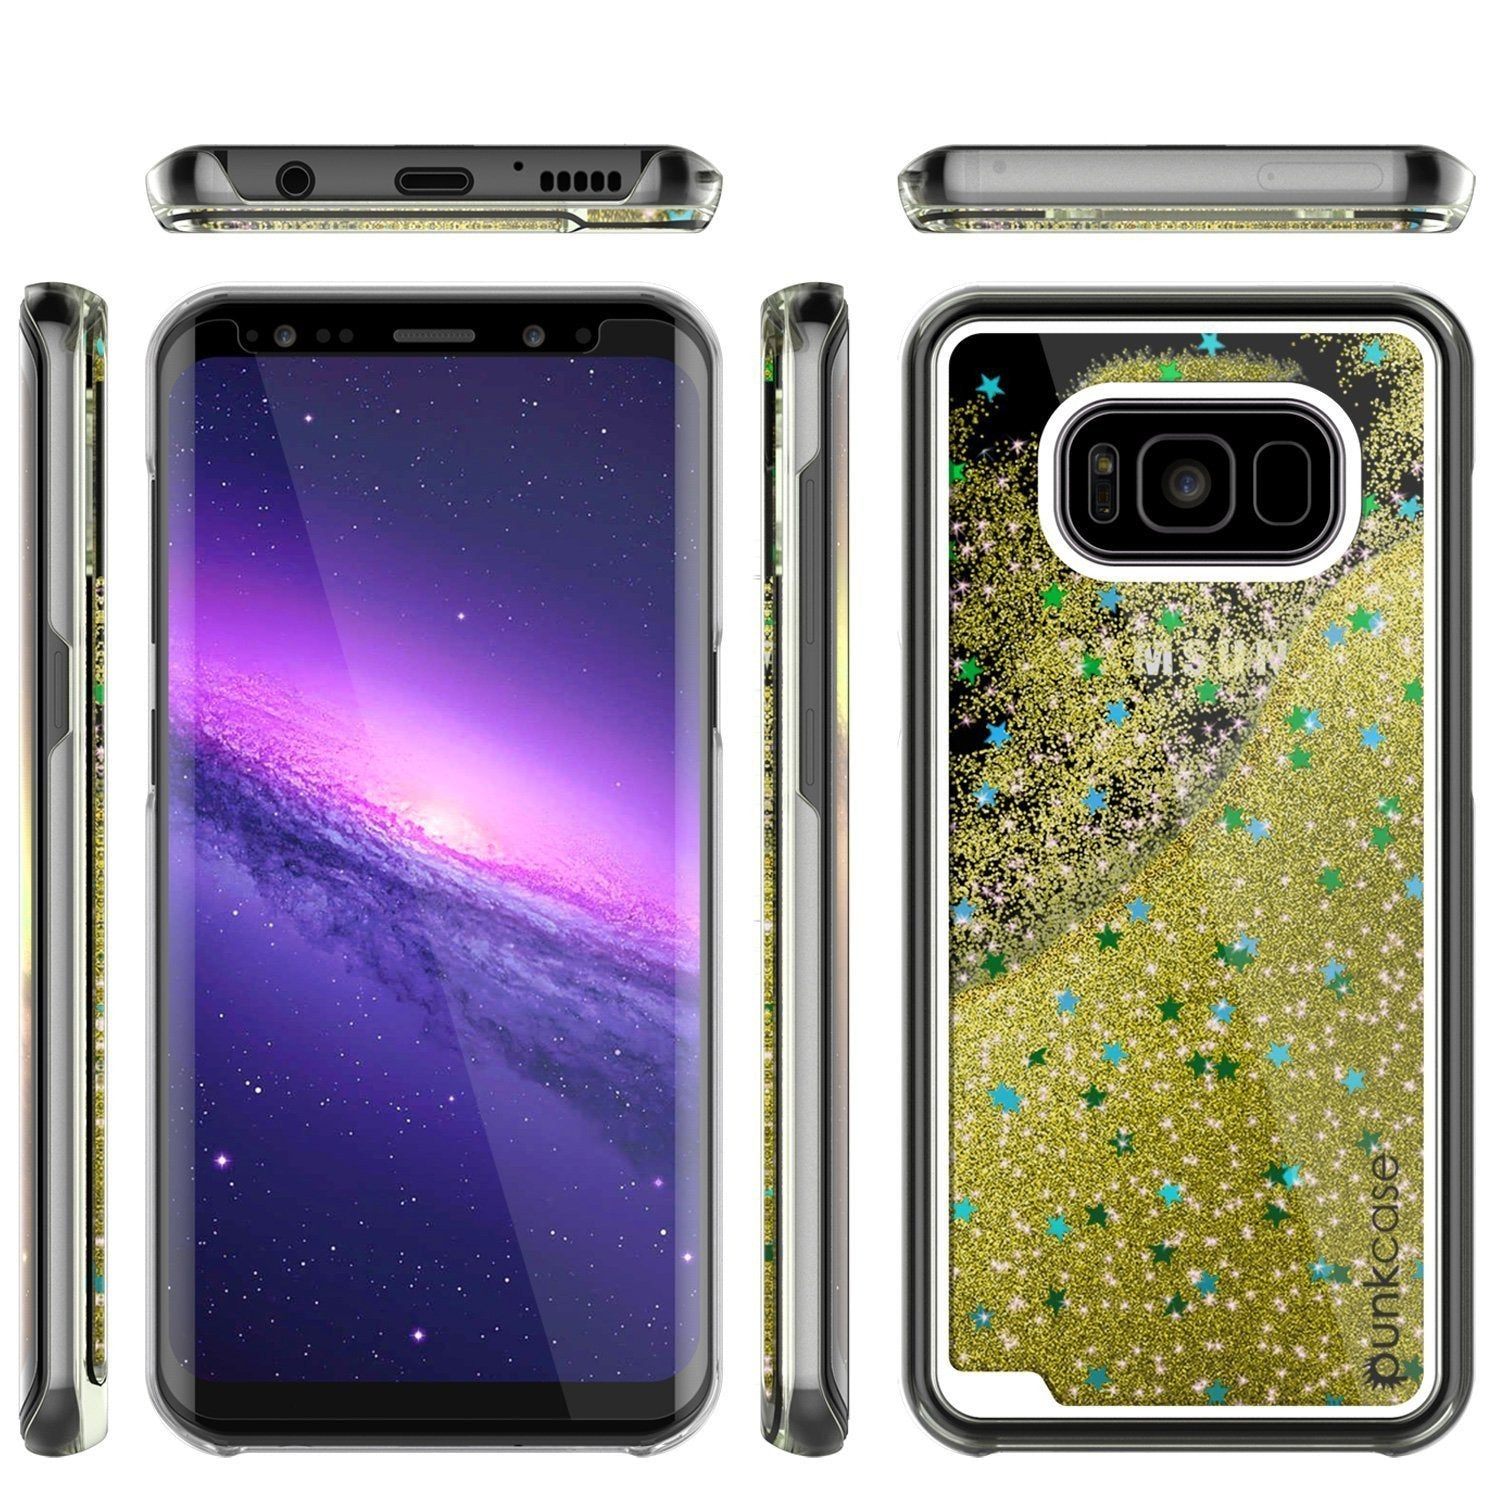 Galaxy S8 Case, Punkcase [Liquid Series] Protective Dual Layer Floating Glitter Cover with lots of Bling & Sparkle + PunkShield Screen Protector for Samsung S8 [Gold] - PunkCase NZ